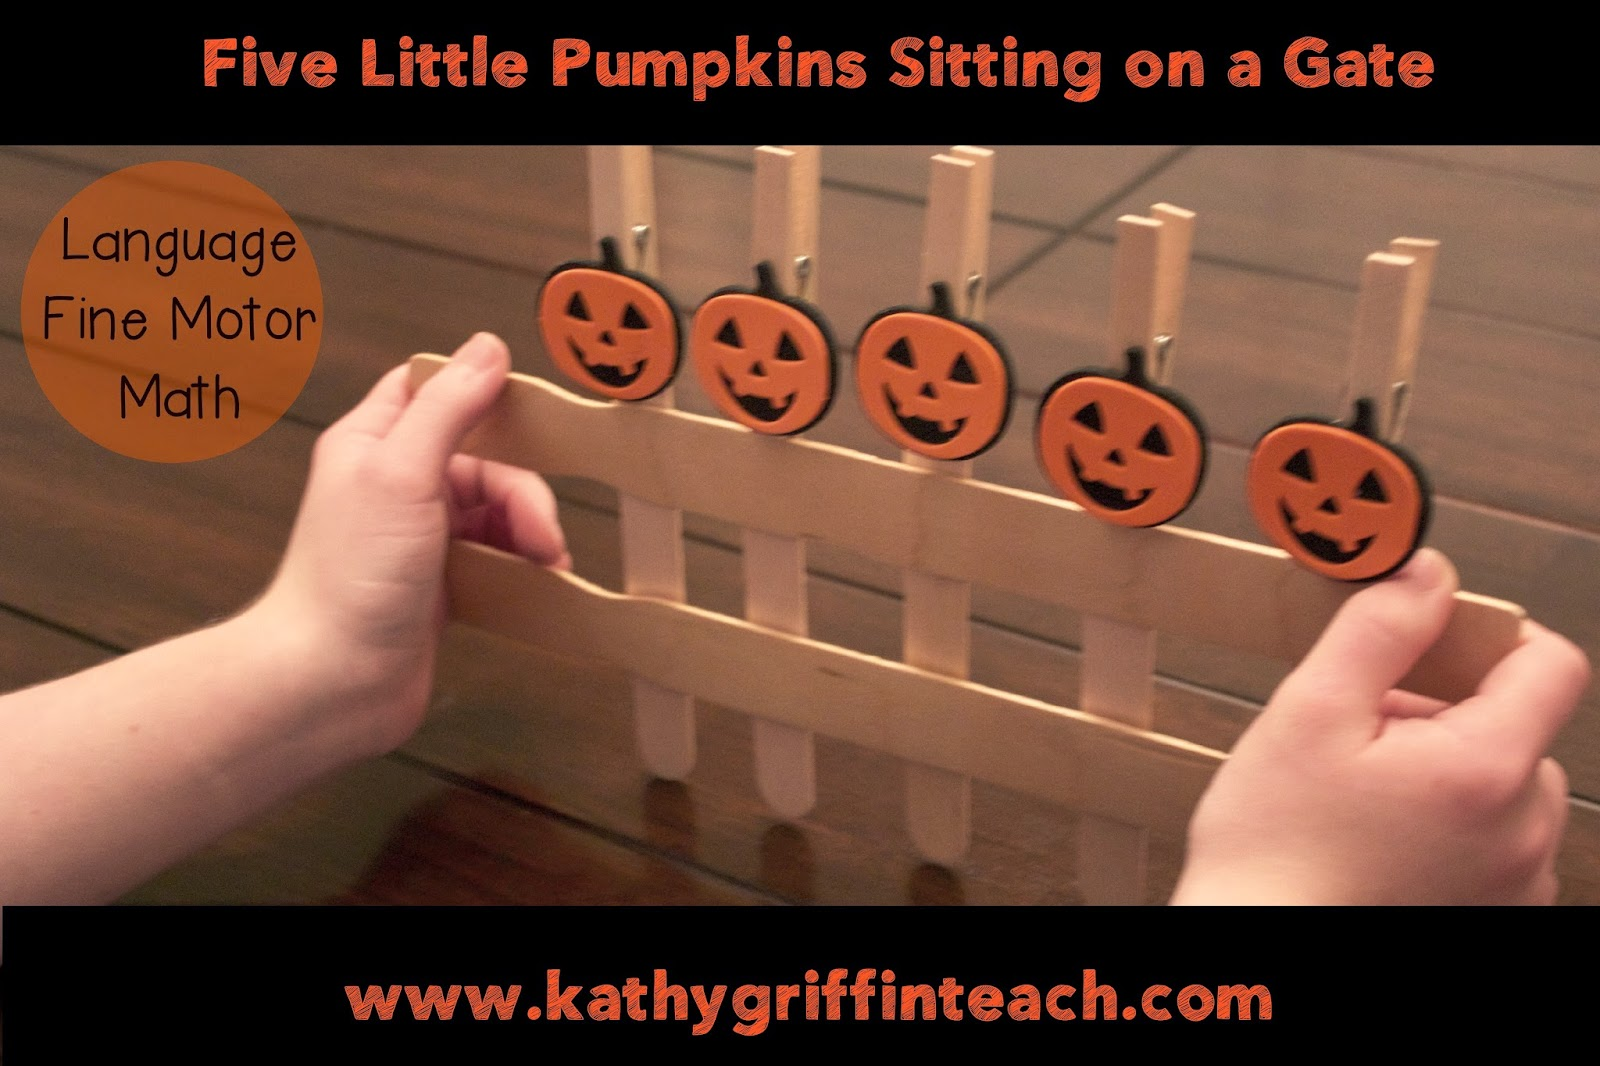 graphic about Five Little Pumpkins Sitting on a Gate Printable referred to as Kathy Griffins Education Suggestions: 5 Minor Pumpkins